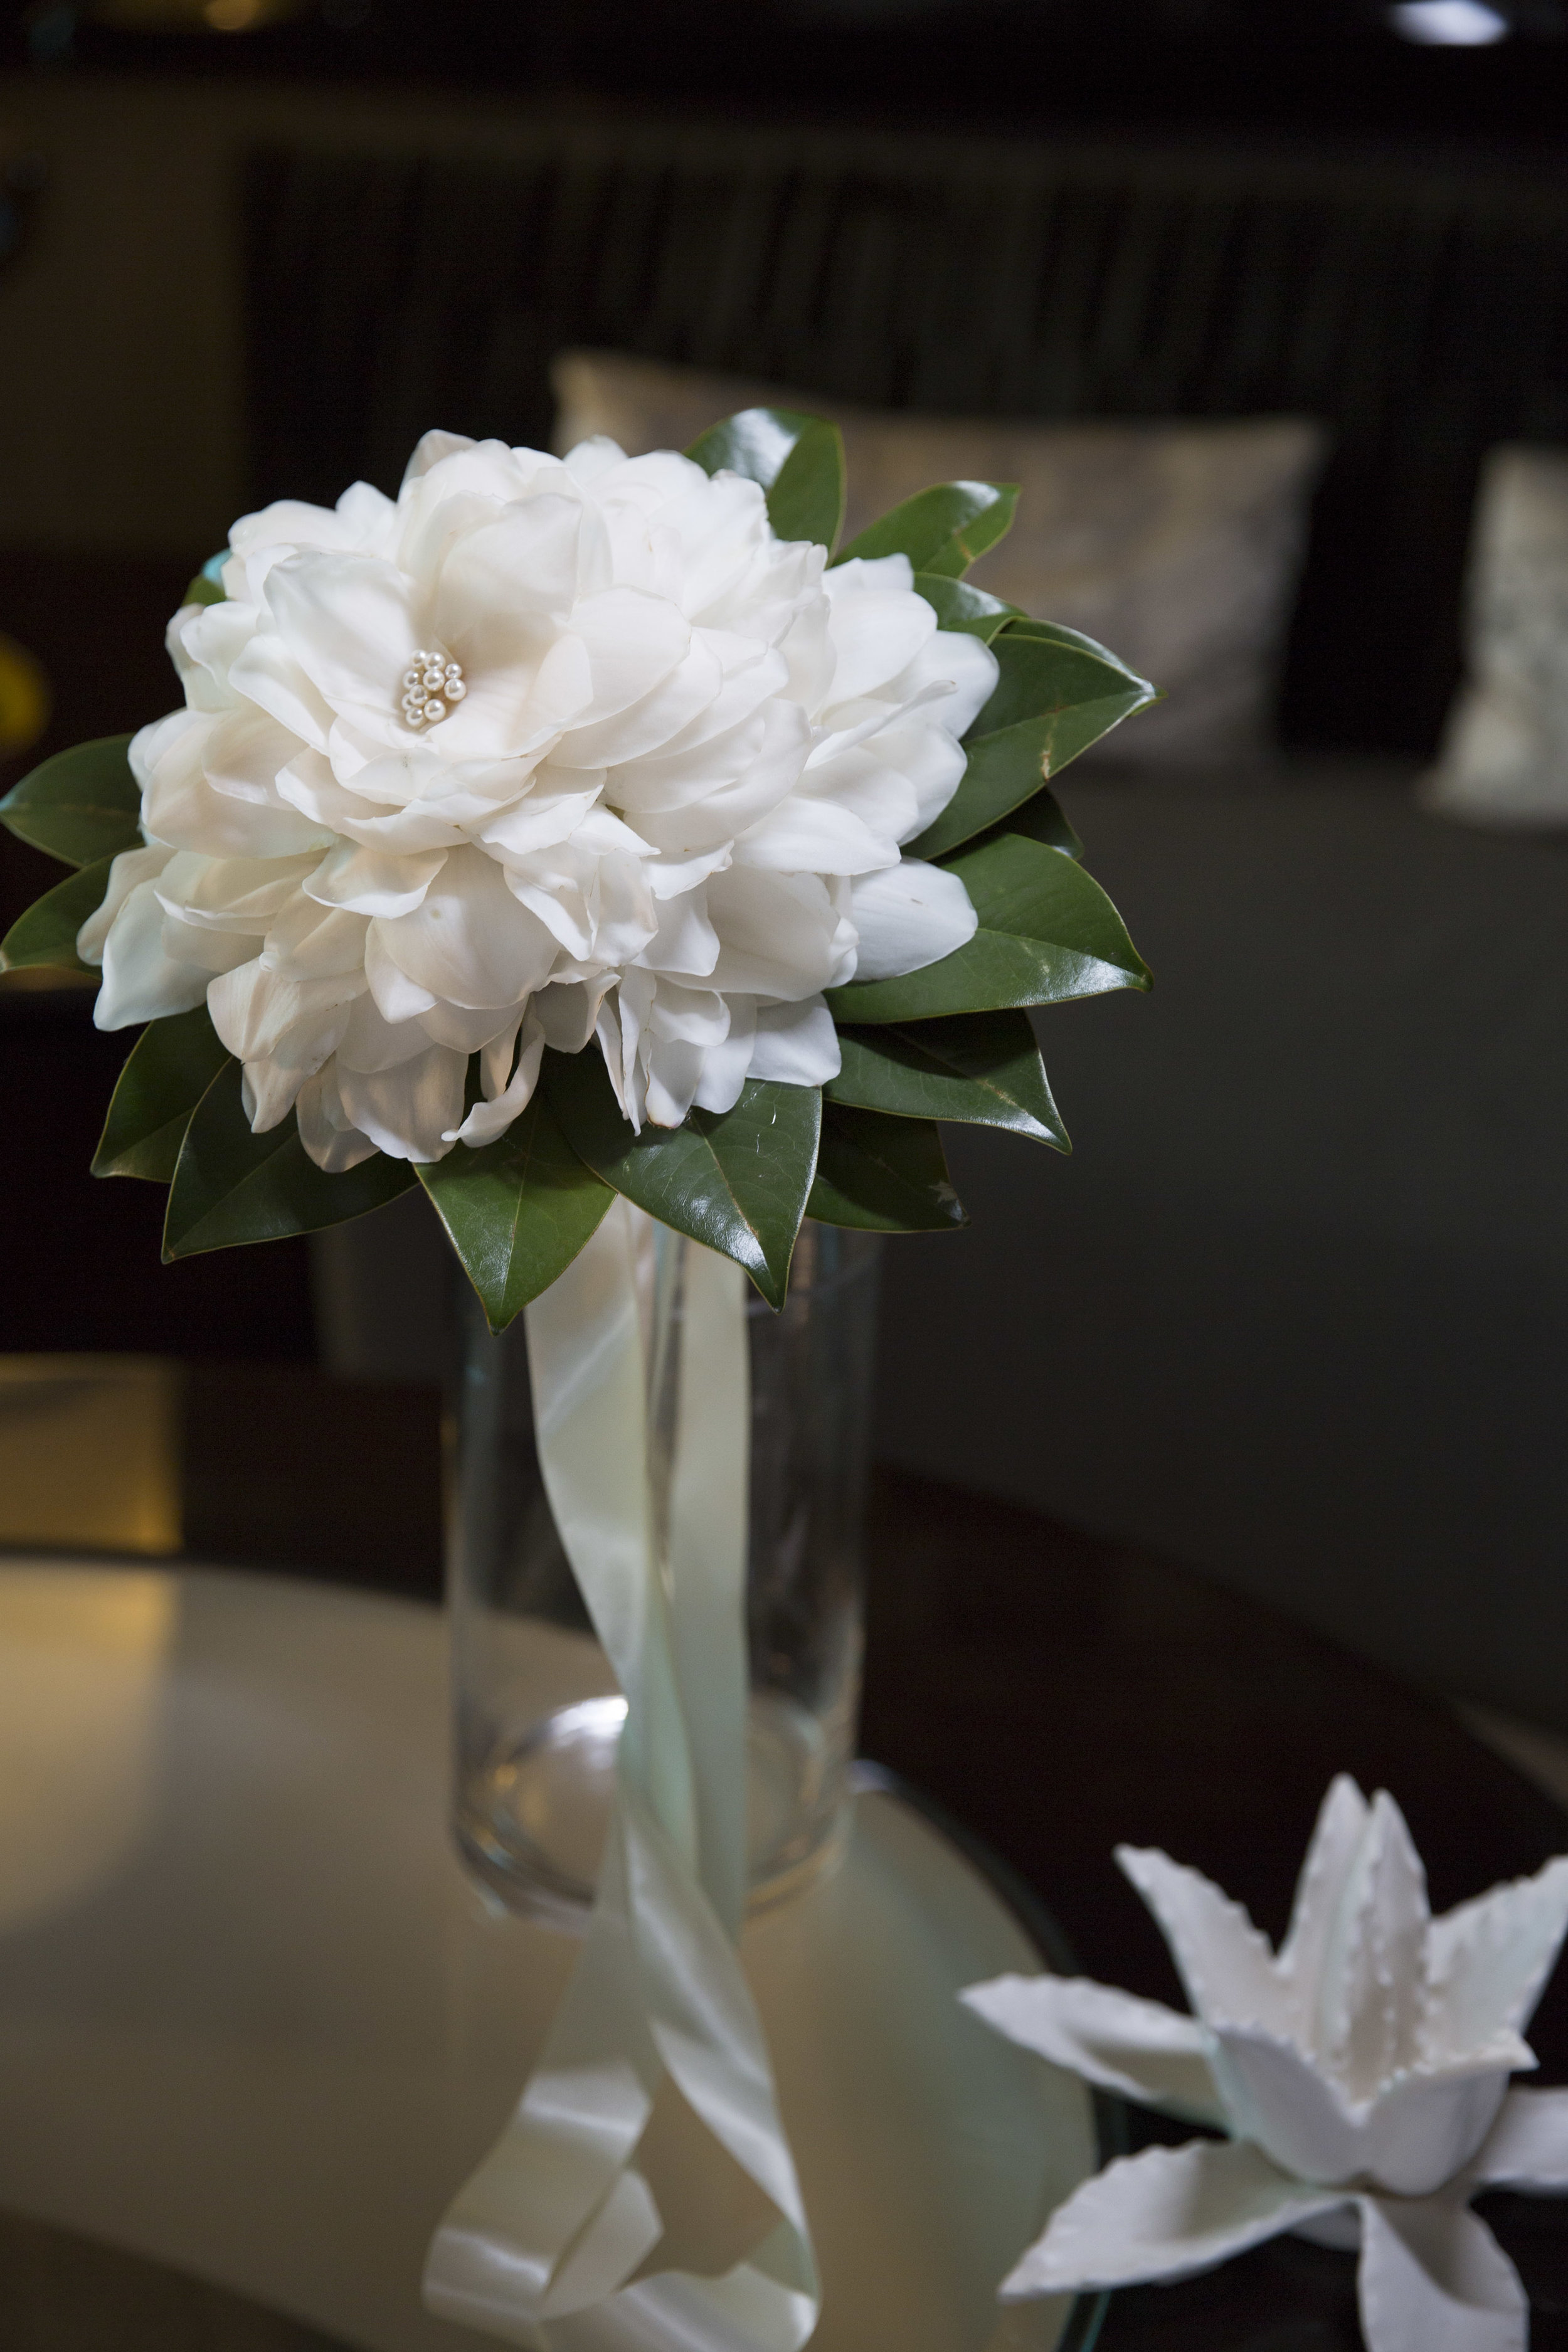 Magnolia bride bouquet by for Las Vegas Wedding Planner Andrea Eppoltio by DBD Vegas. Photo by AltF Photography.